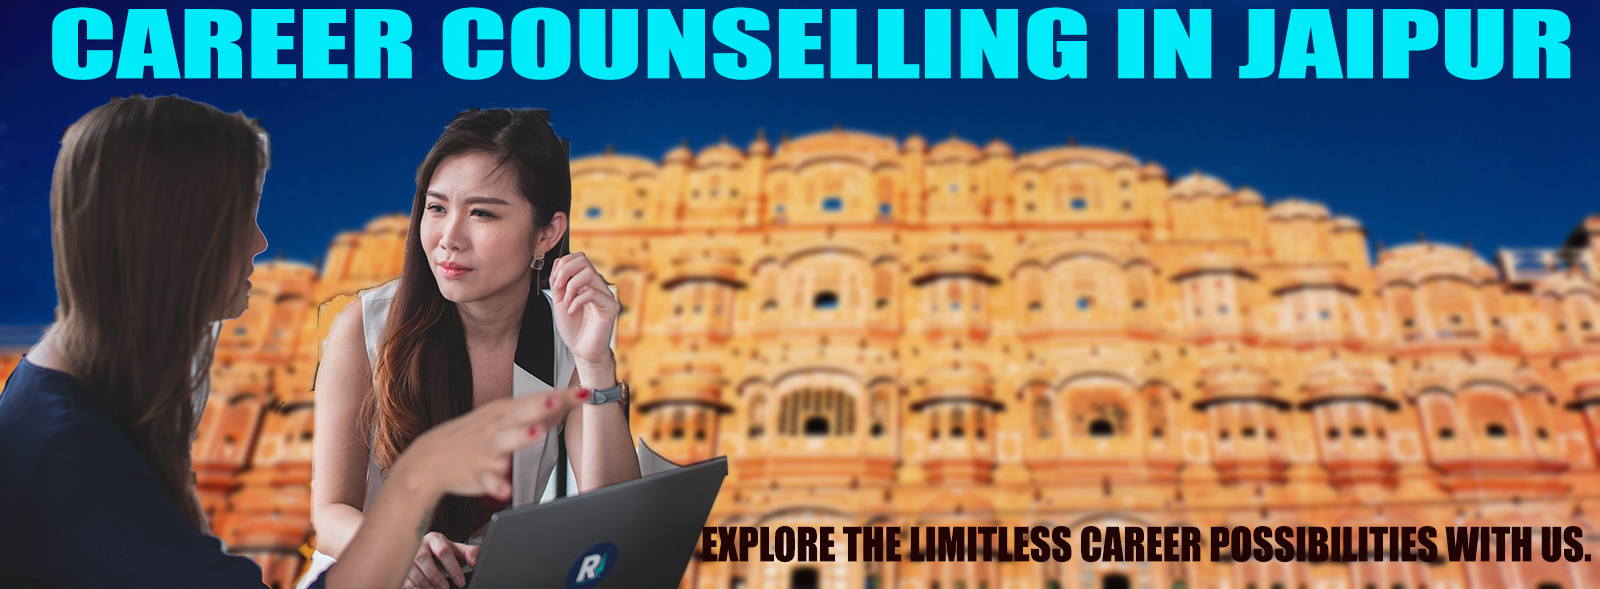 career counselling in jaipur